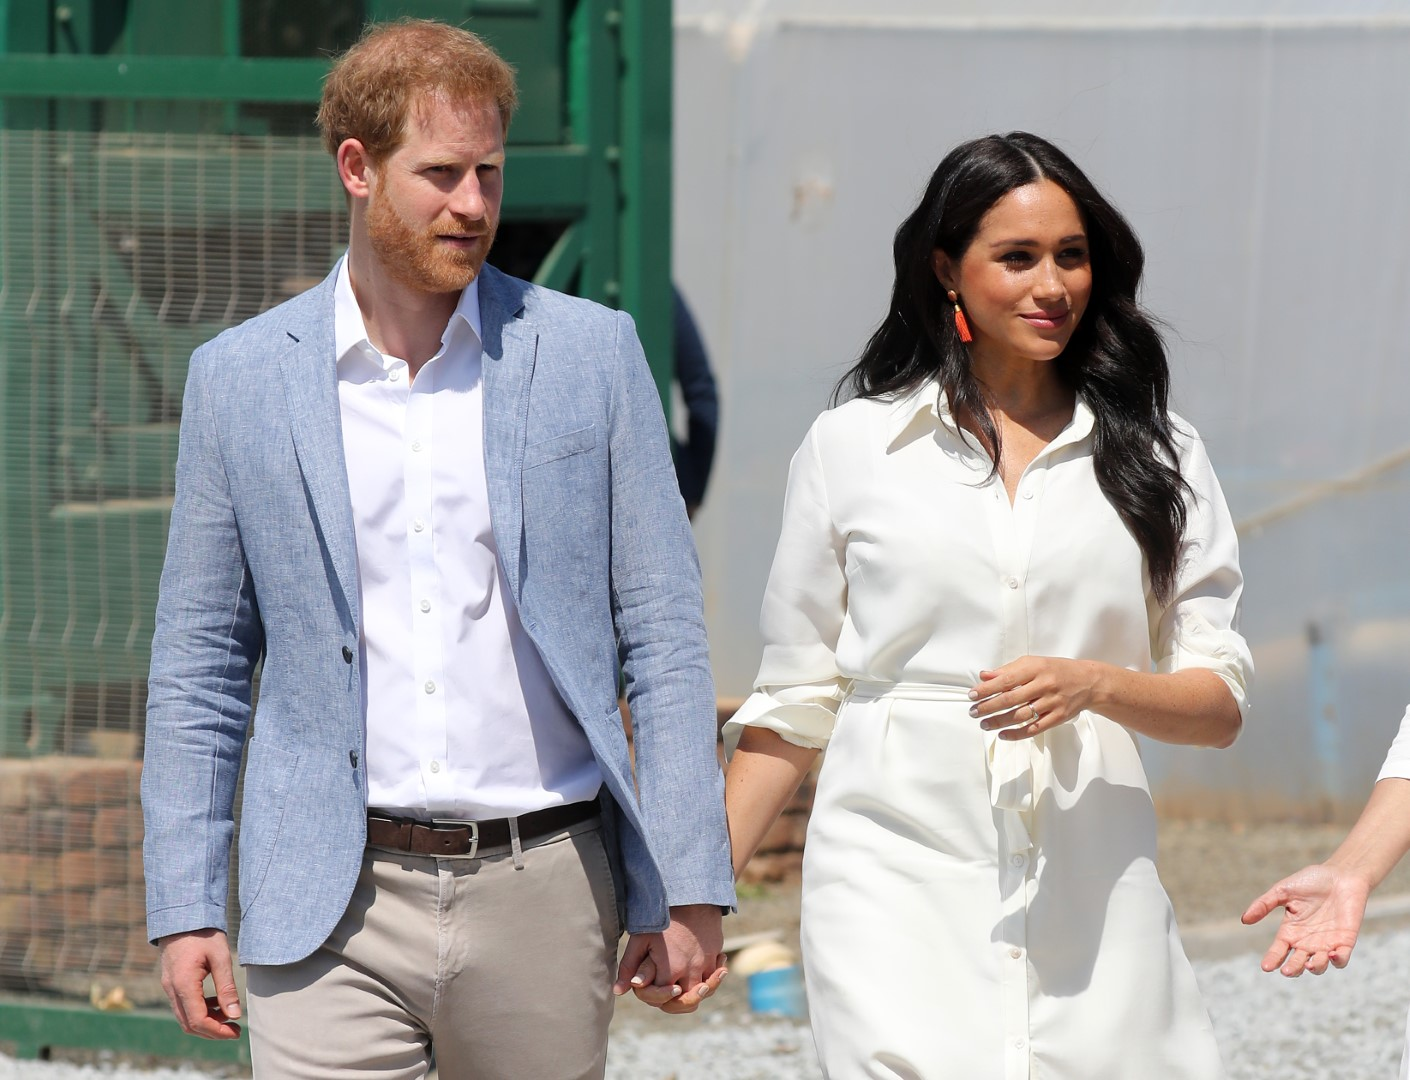 JOHANNESBURG, SOUTH AFRICA - OCTOBER 02: Prince Harry, Duke of Sussex and Meghan, Duchess of Sussex visit a township to learn about Youth Employment Services on October 02, 2019